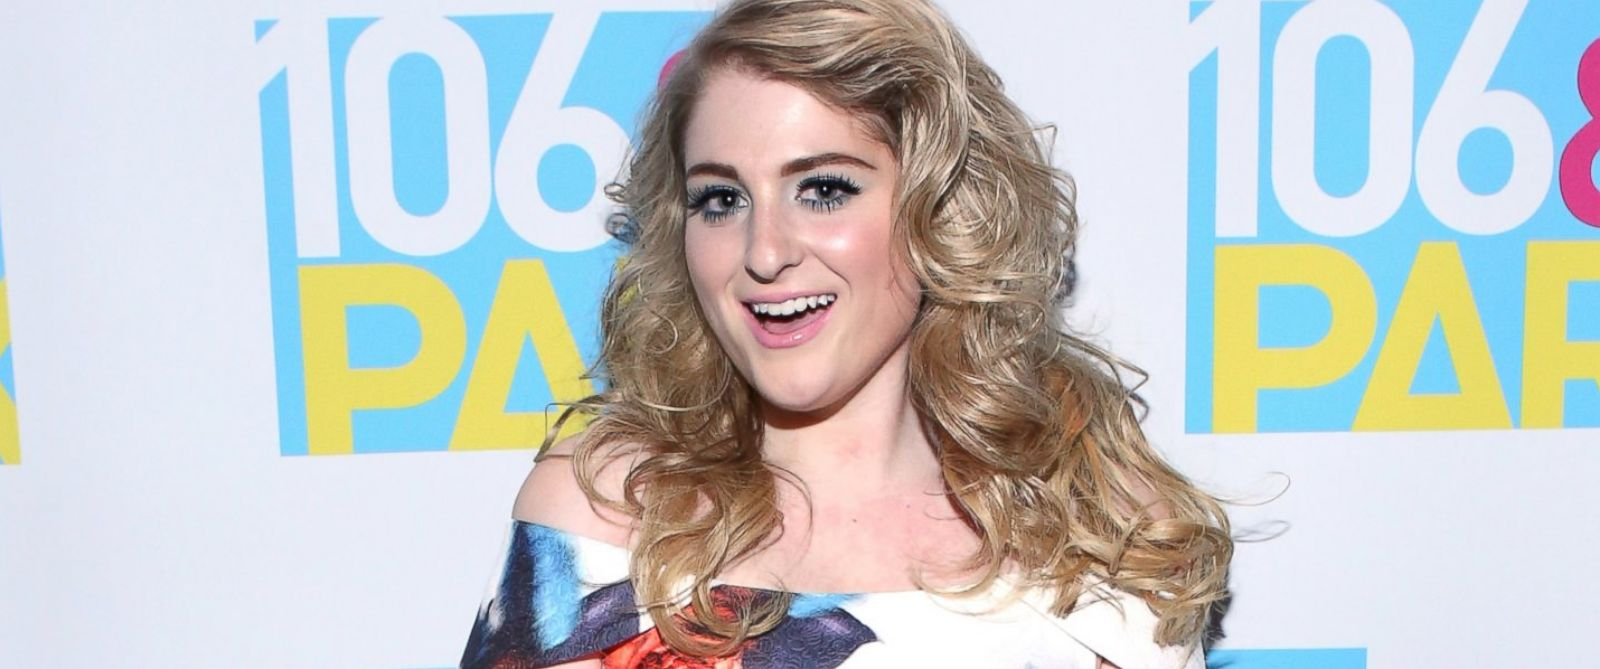 PHOTO: Recording artist Meghan Trainor visits 106 & Park at BET studio, Aug. 6, 2014, in New York City.